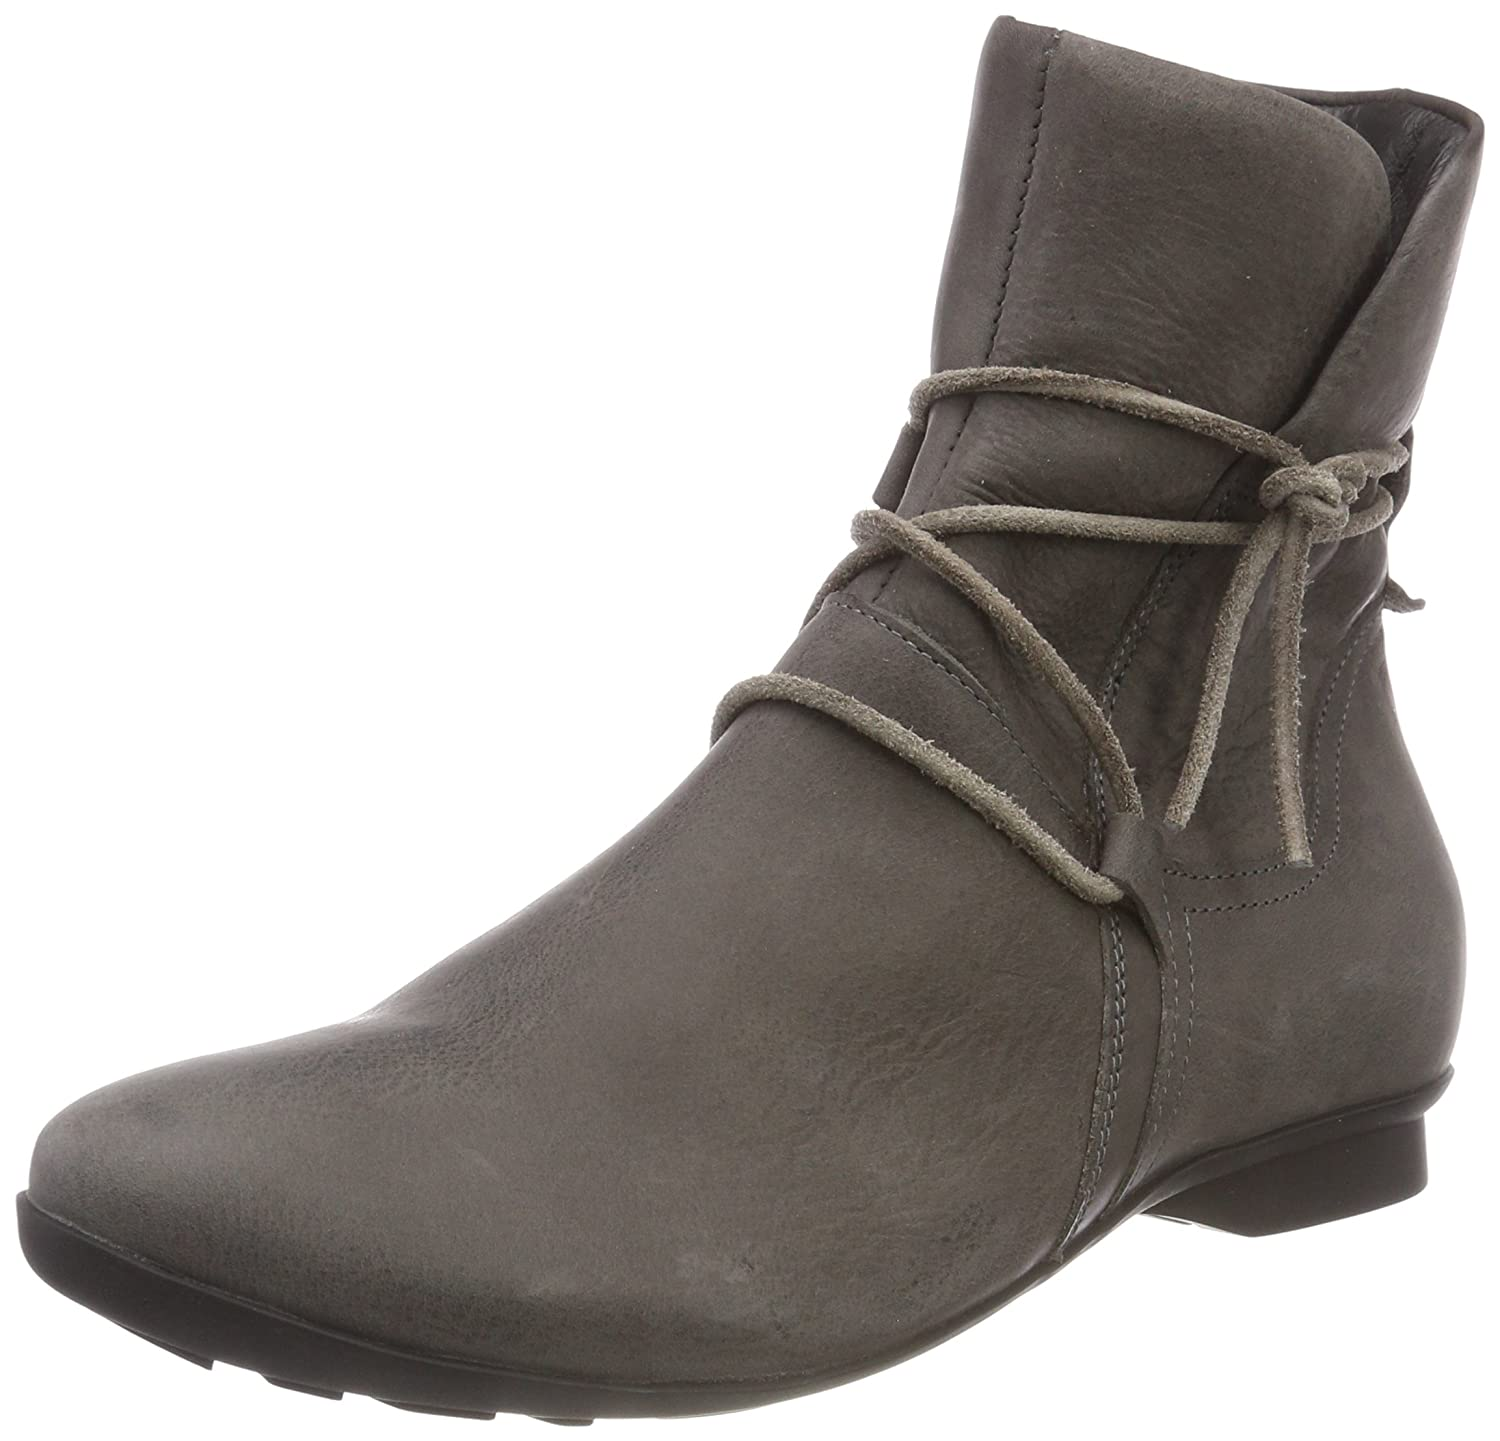 Think! Keshuel_383127, Think! Desert Boots Keshuel_383127, Femme Gris (14 B000W069PS Antrazit) ccd7b06 - piero.space